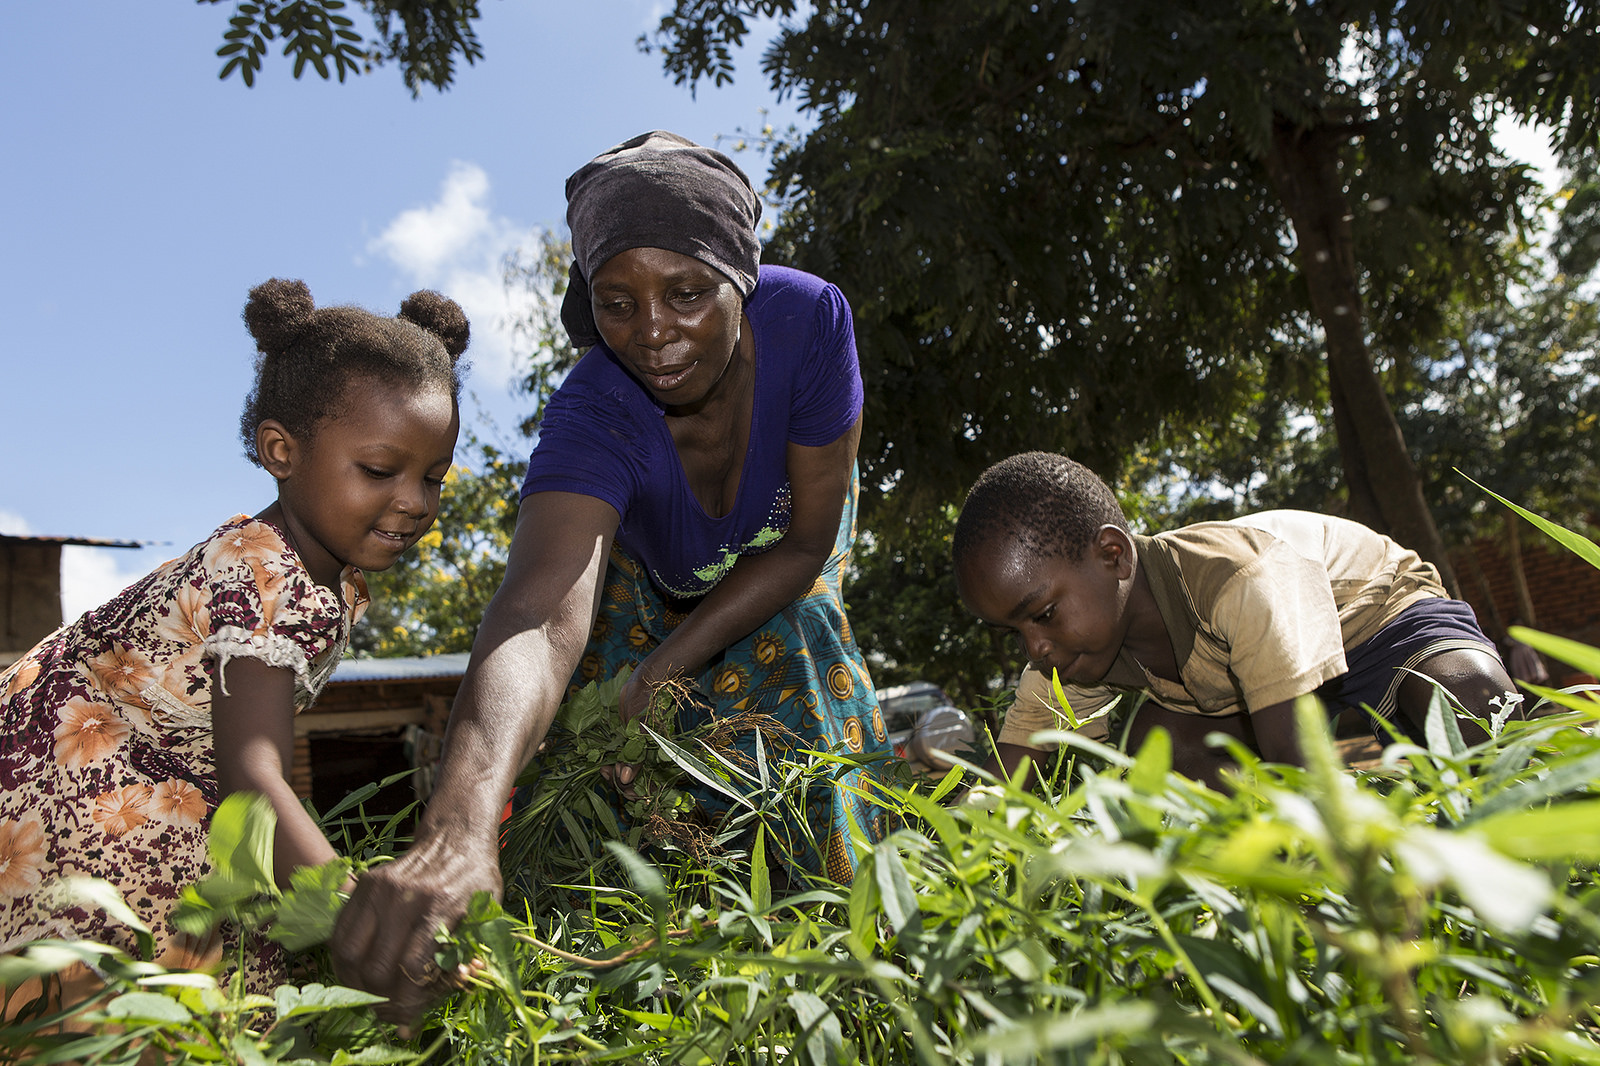 Aziza Ismail Waziri (in purple) tends to her home garden with the help of her children in the village of Kauzeni